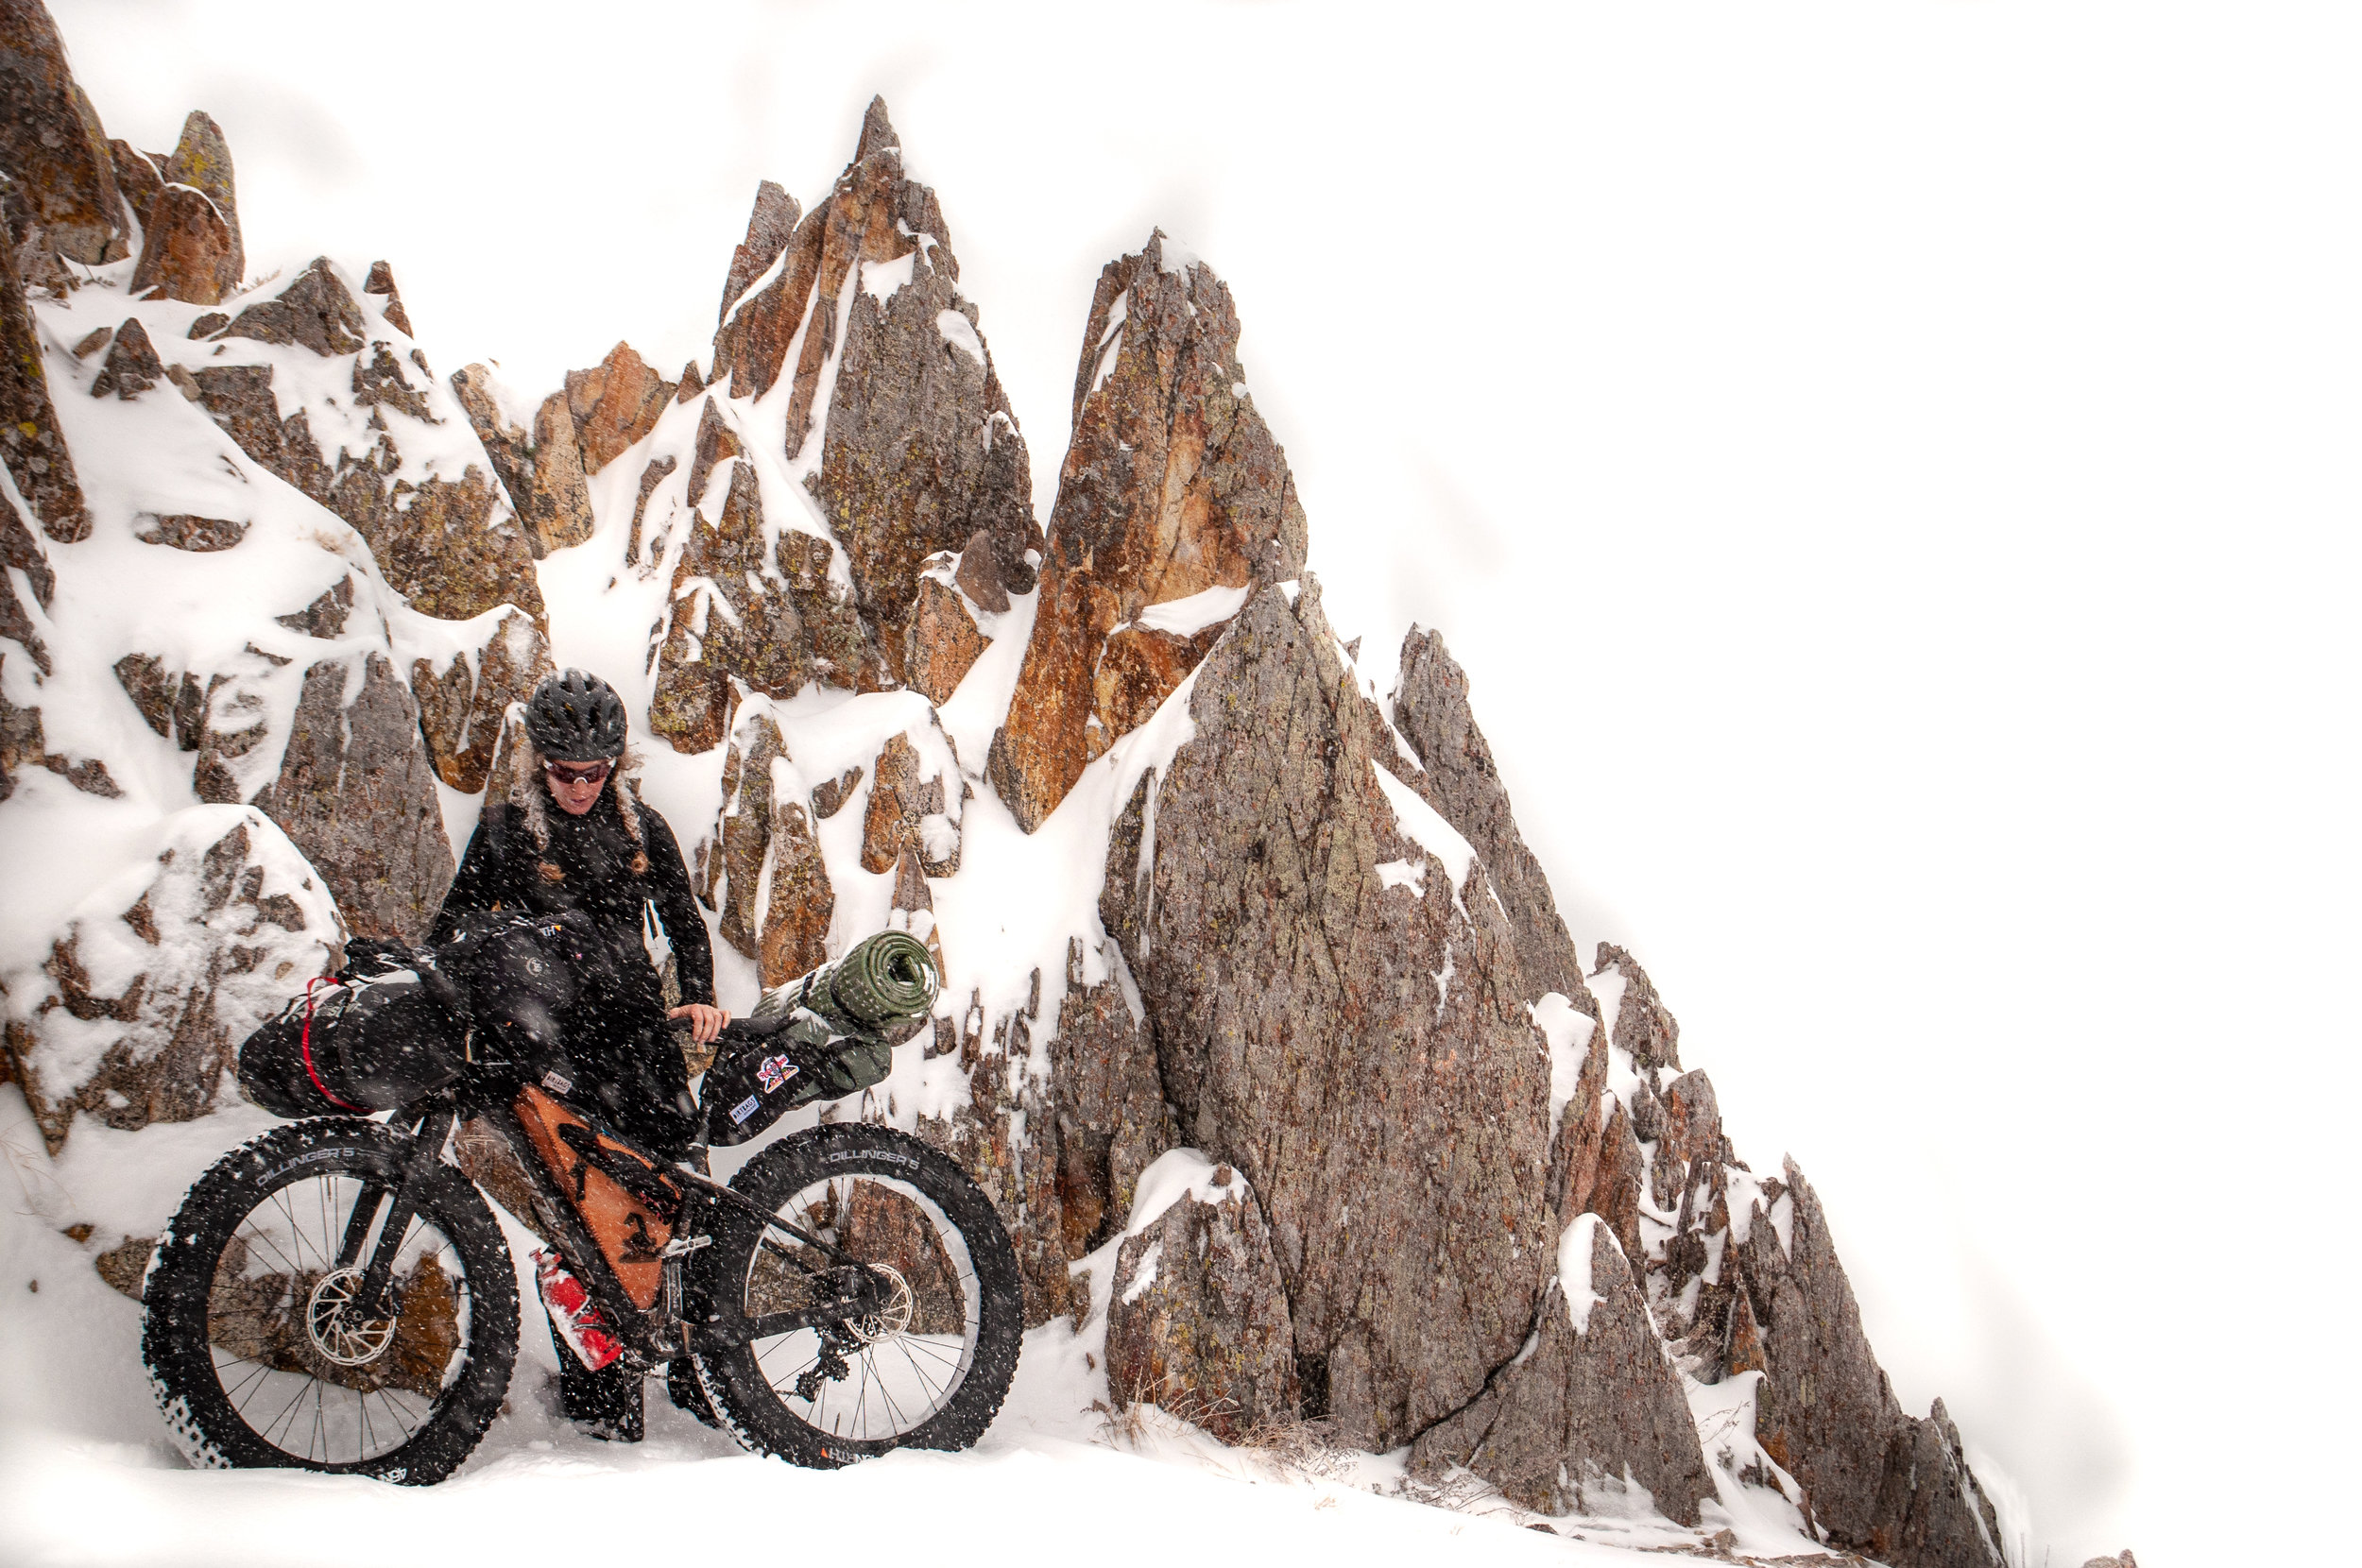 Fat bike rider with a loaded fat bike standing in front of snow covered rocks